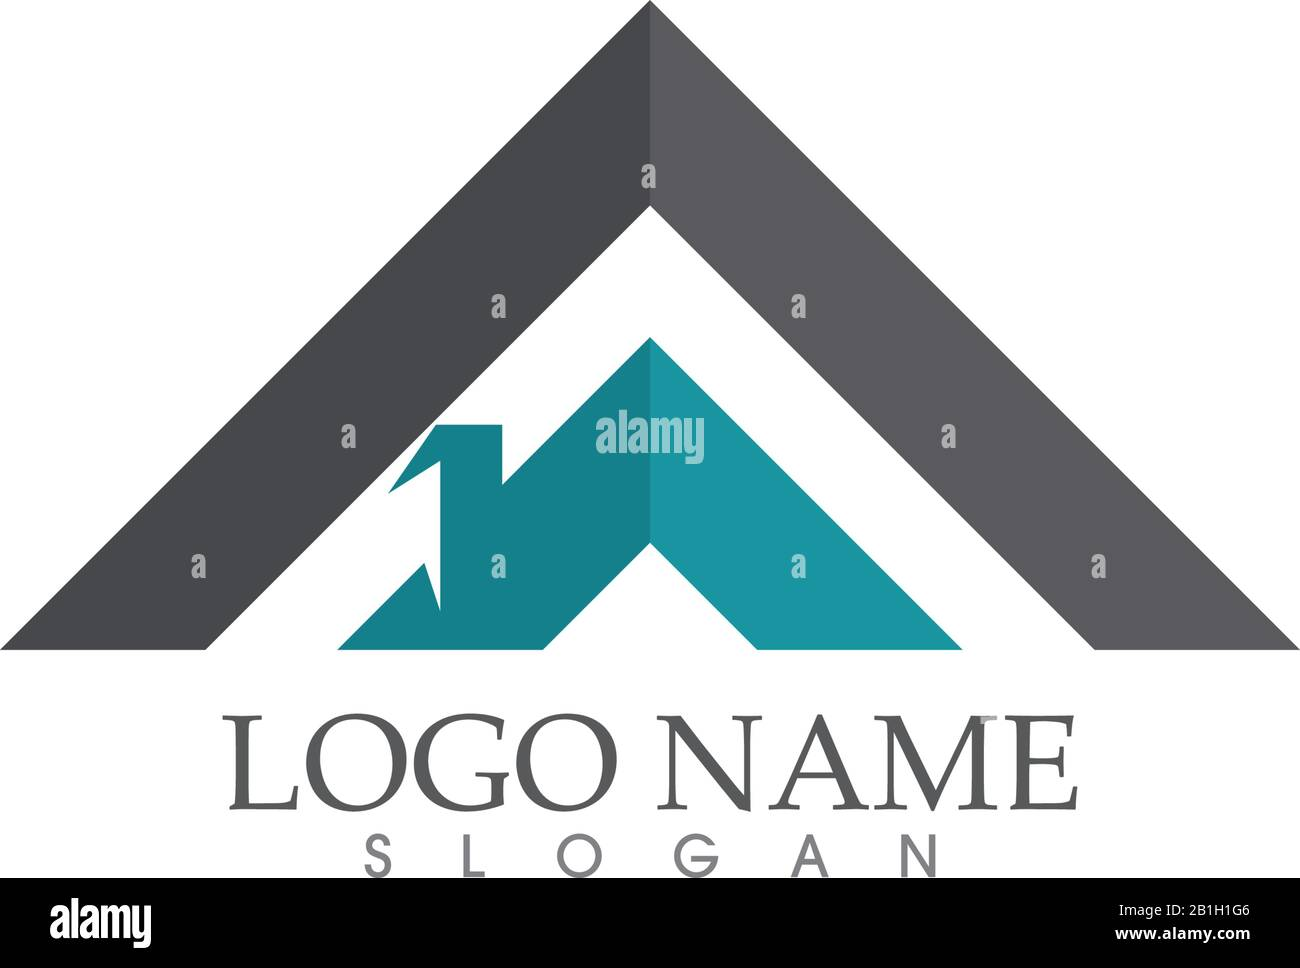 Home And House Property And Construction Logo Design Stock Vector Image Art Alamy